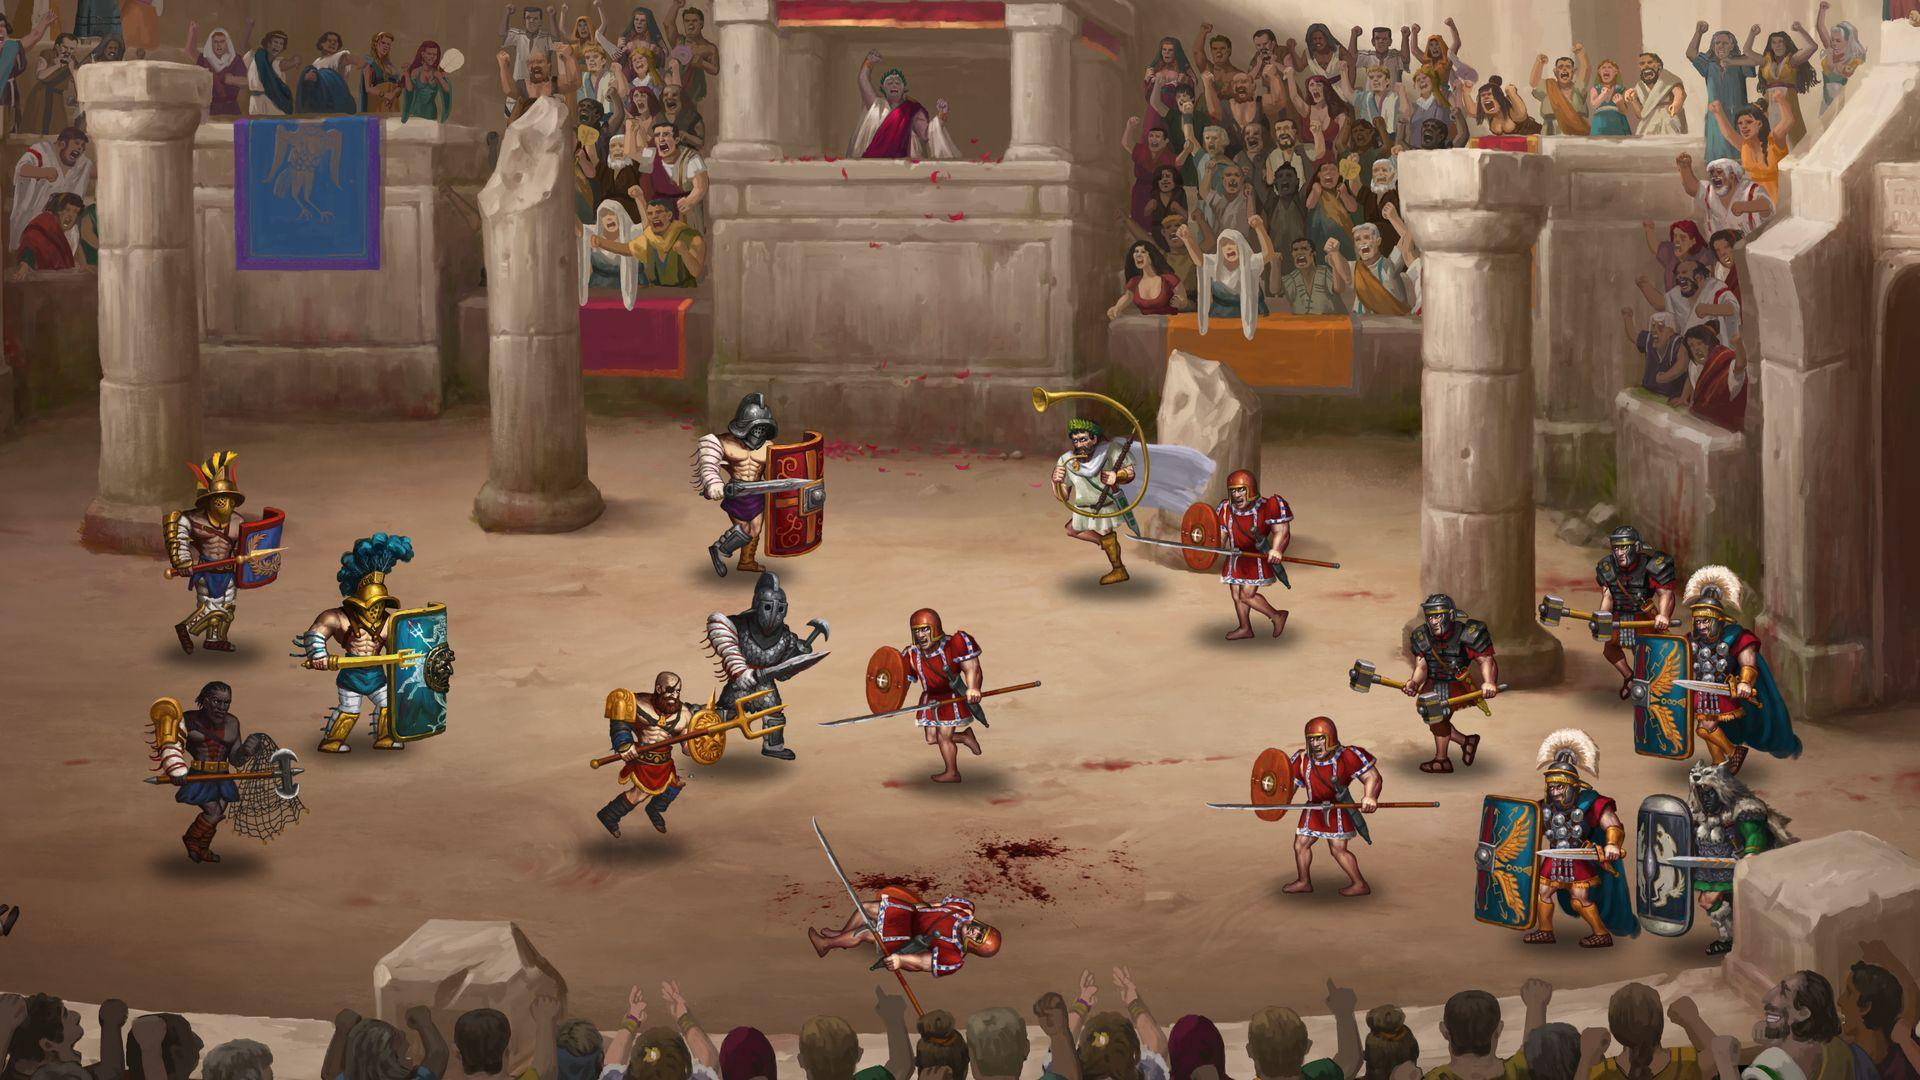 Story of a Gladiator screenshot 1